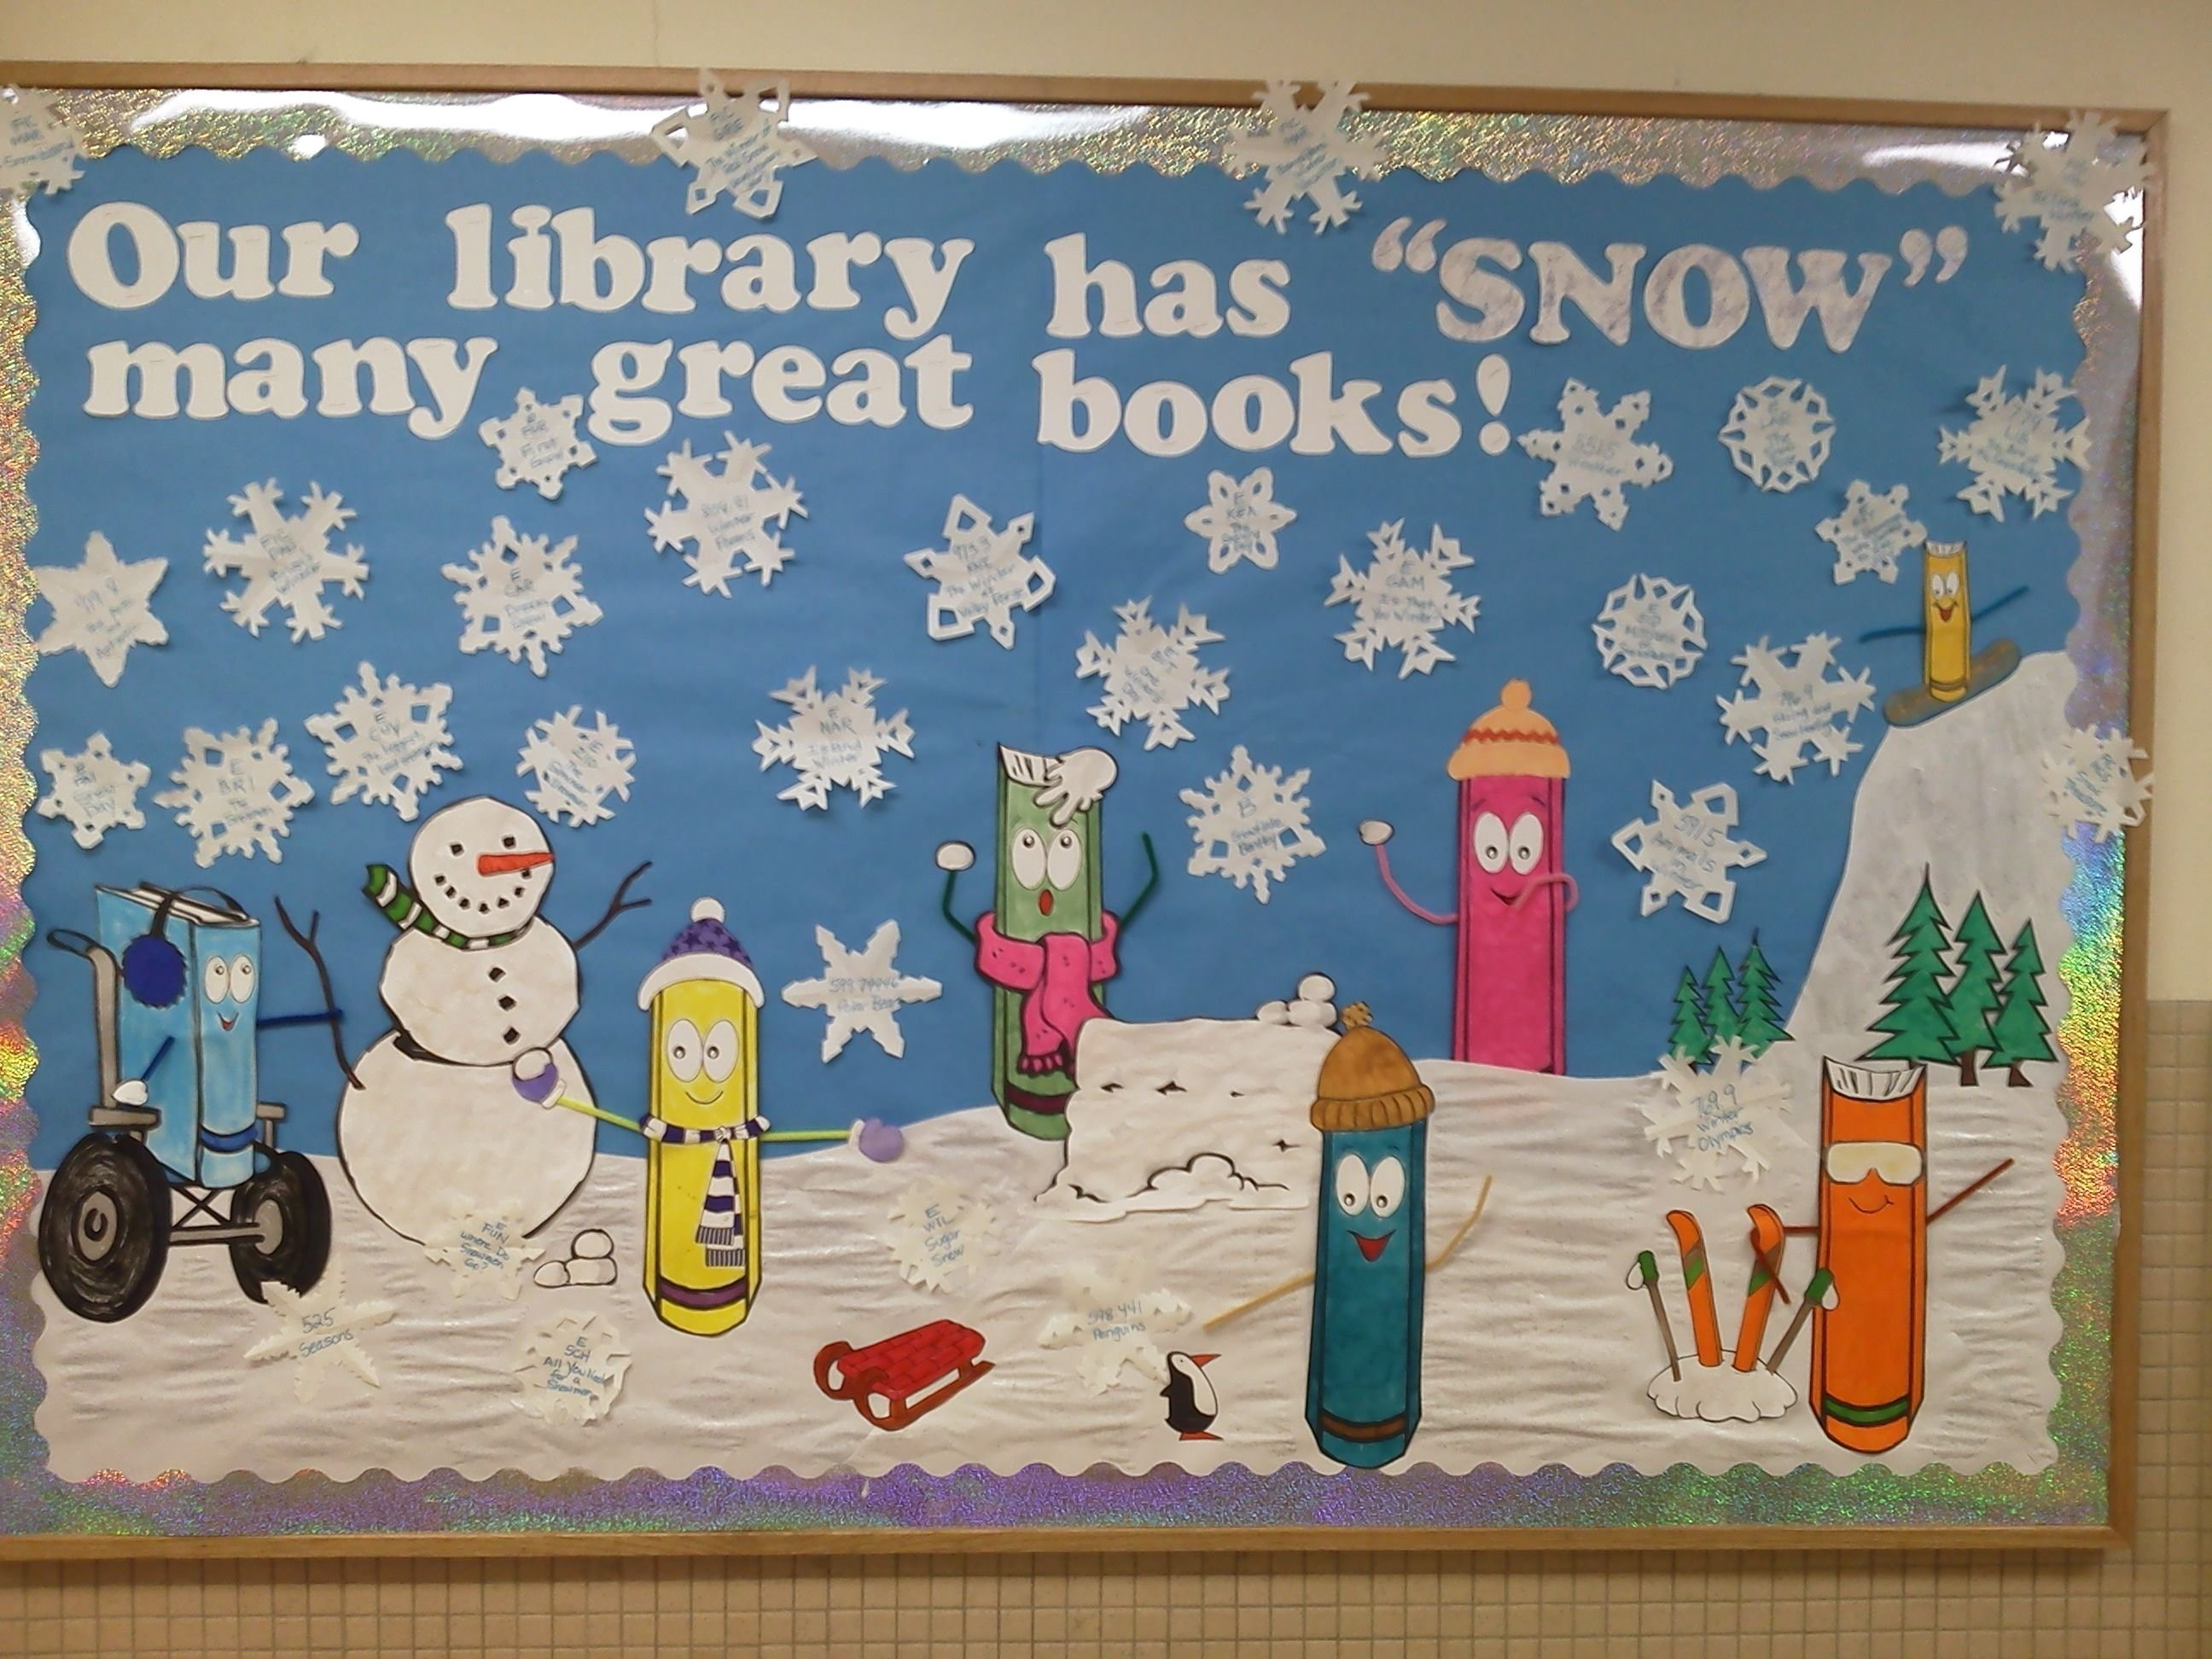 10 Attractive Winter Library Bulletin Board Ideas our library has snow many great books bulletin board for winter 1 2020